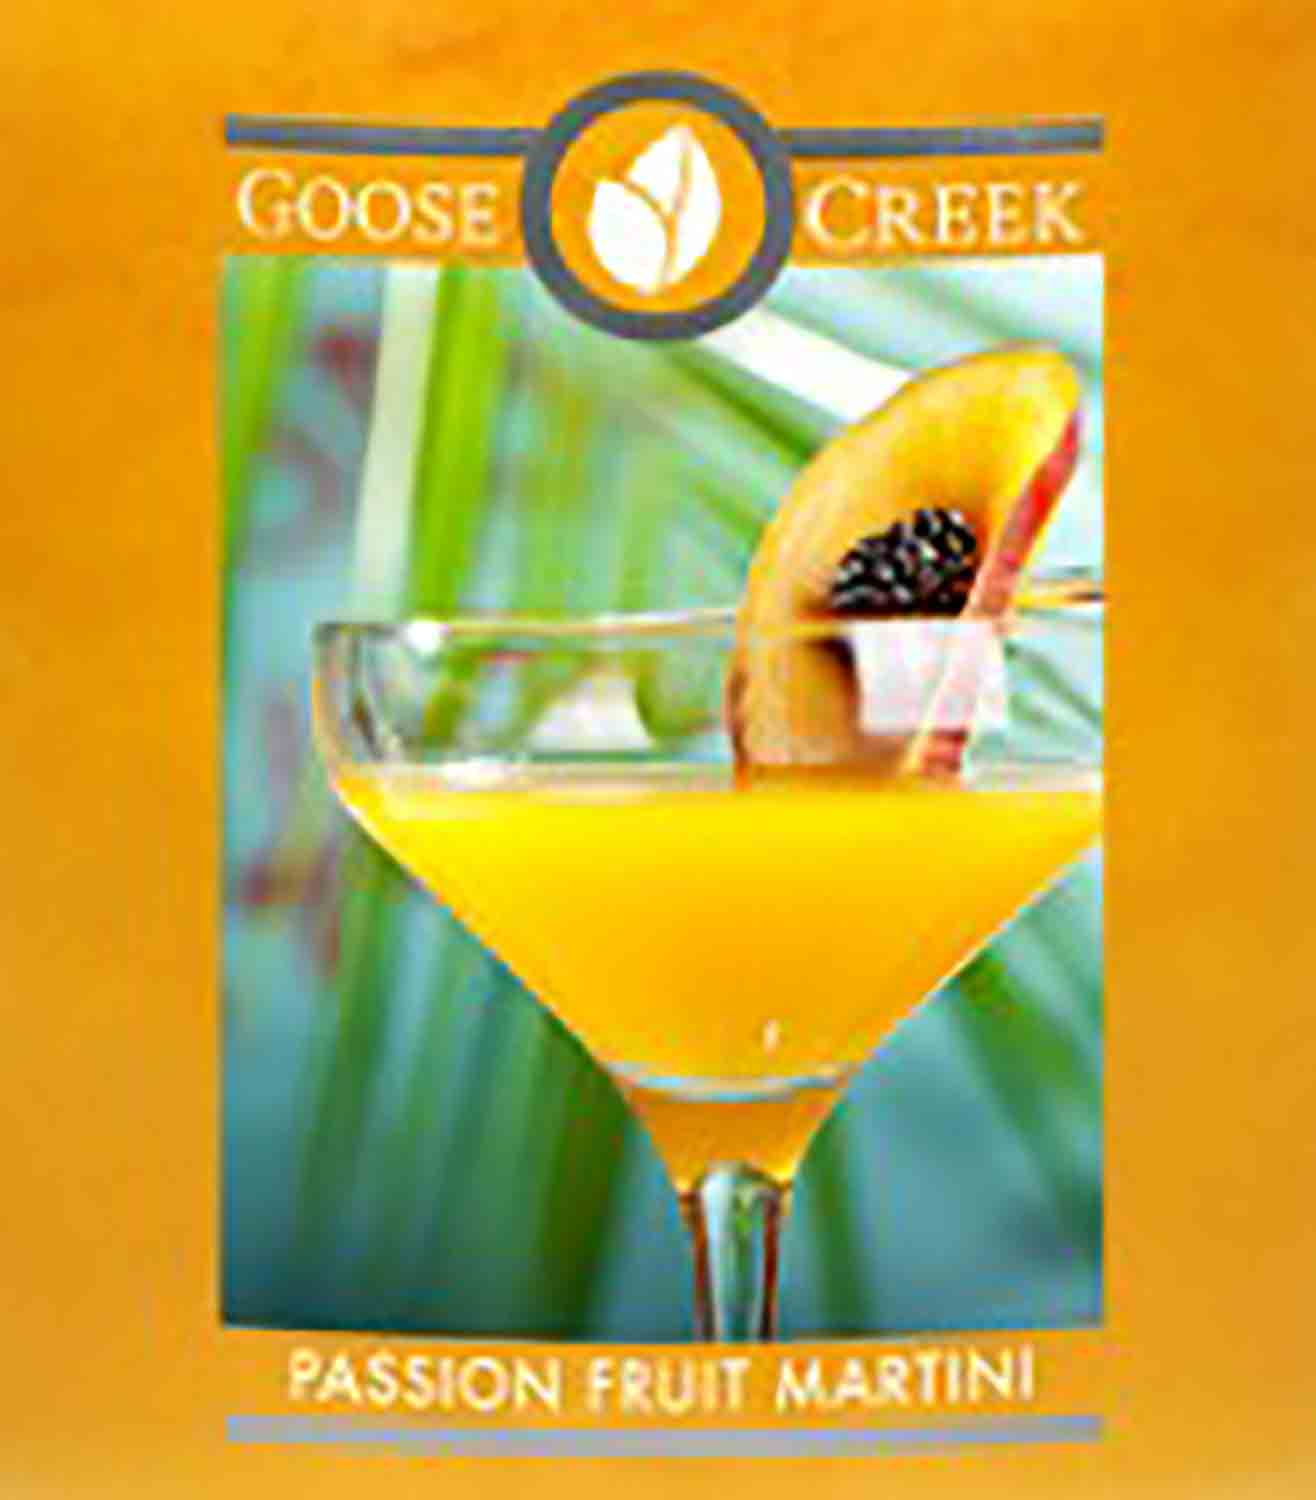 Crumble vosk Goose Creek Passion Fruit Martini USA 22 g